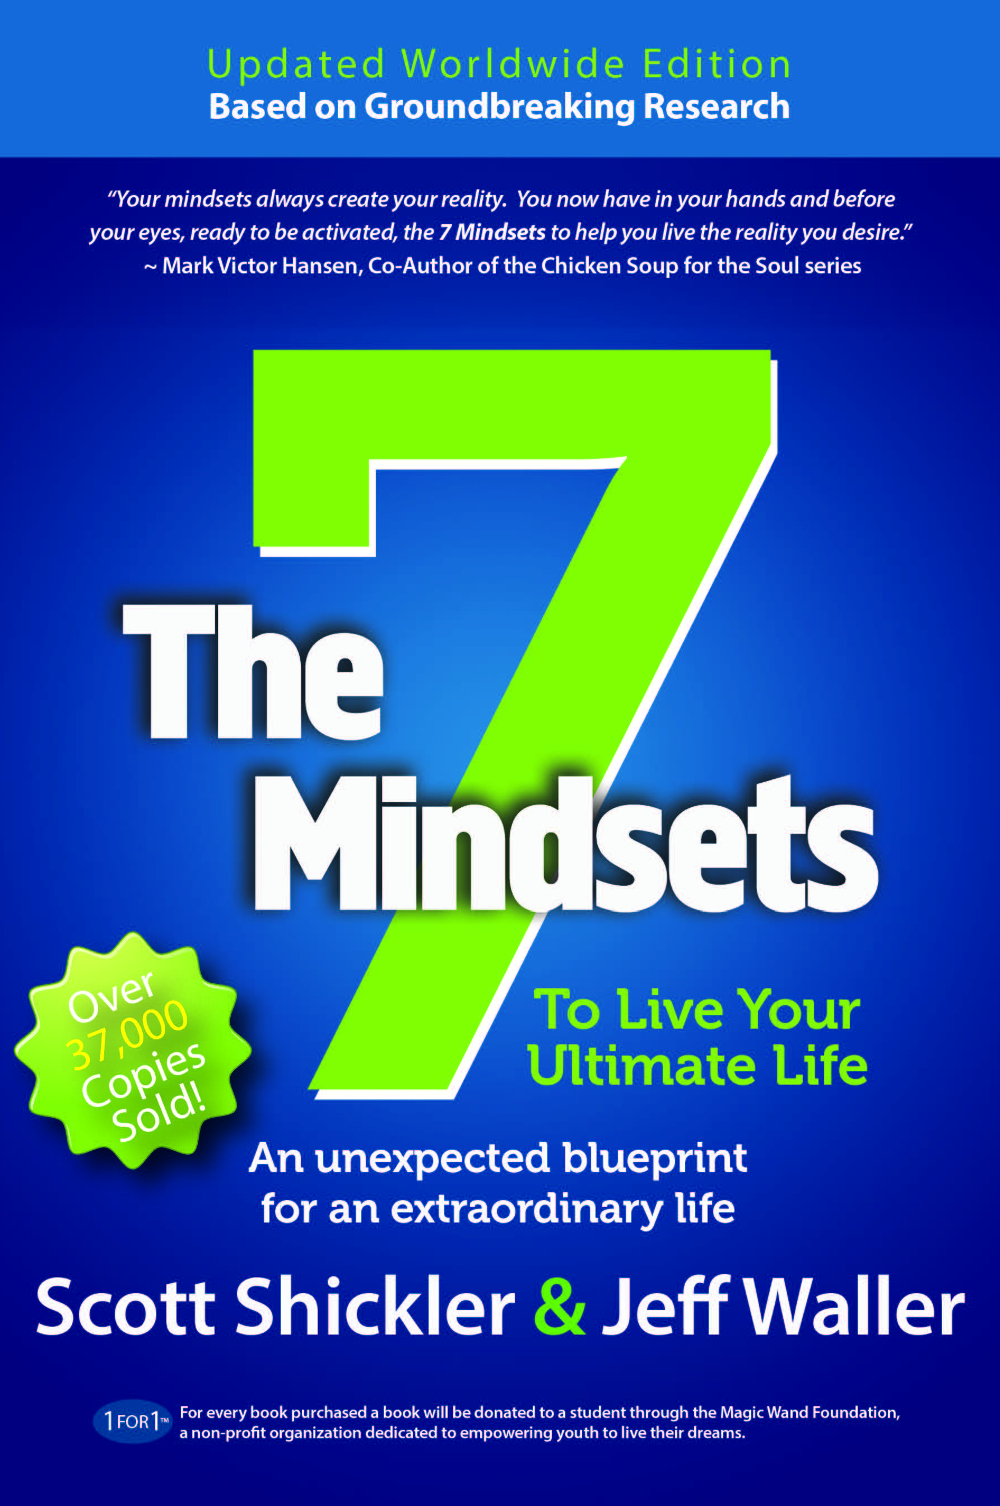 The 7 Mindsets: Updated Worldwide Edition